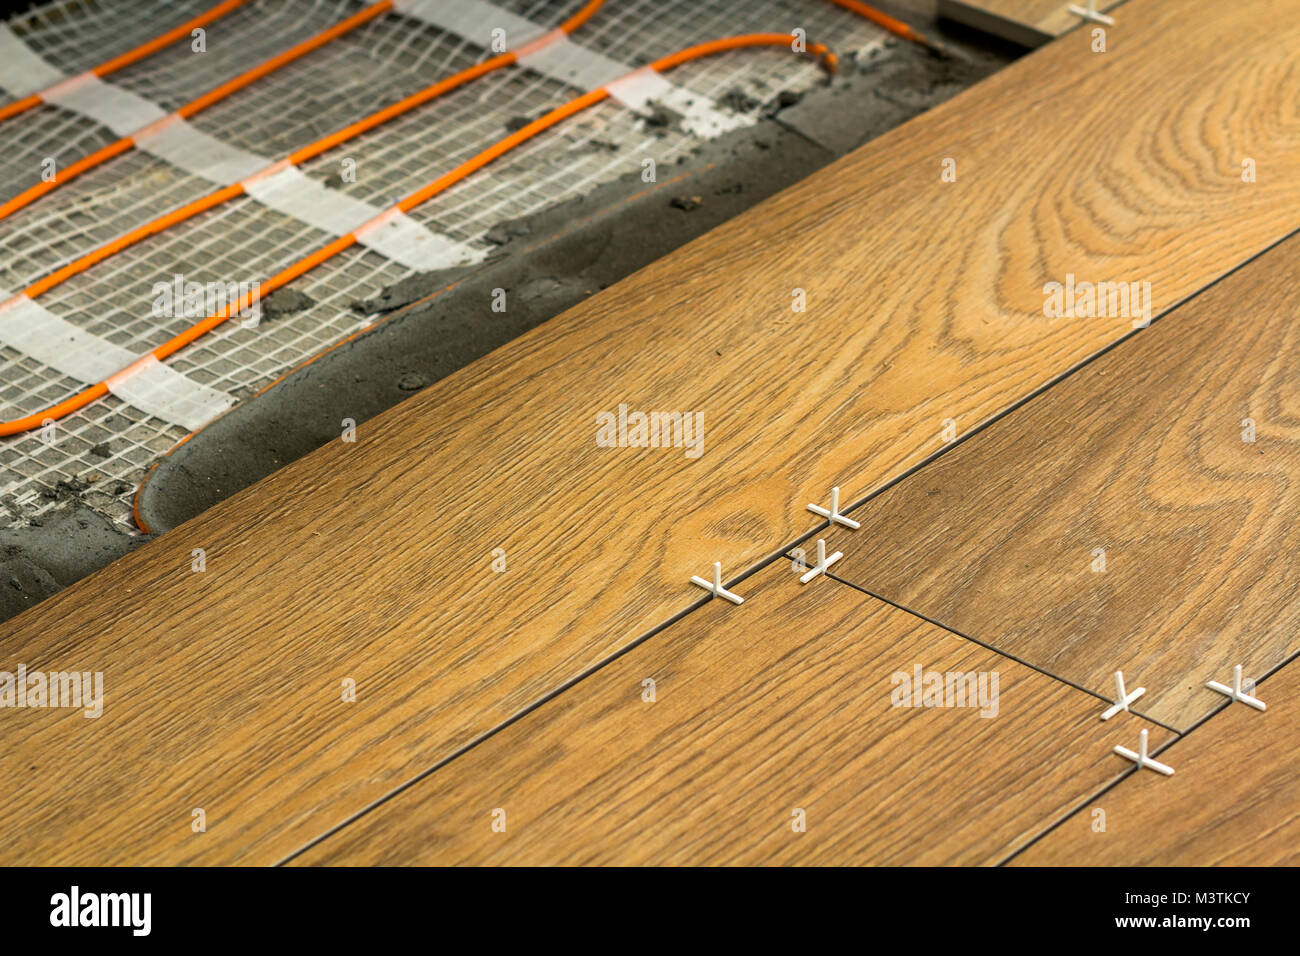 Installation of ceramic tiles and heating elements in warm tile installation of ceramic tiles and heating elements in warm tile floor renovation and improvement concept dailygadgetfo Choice Image